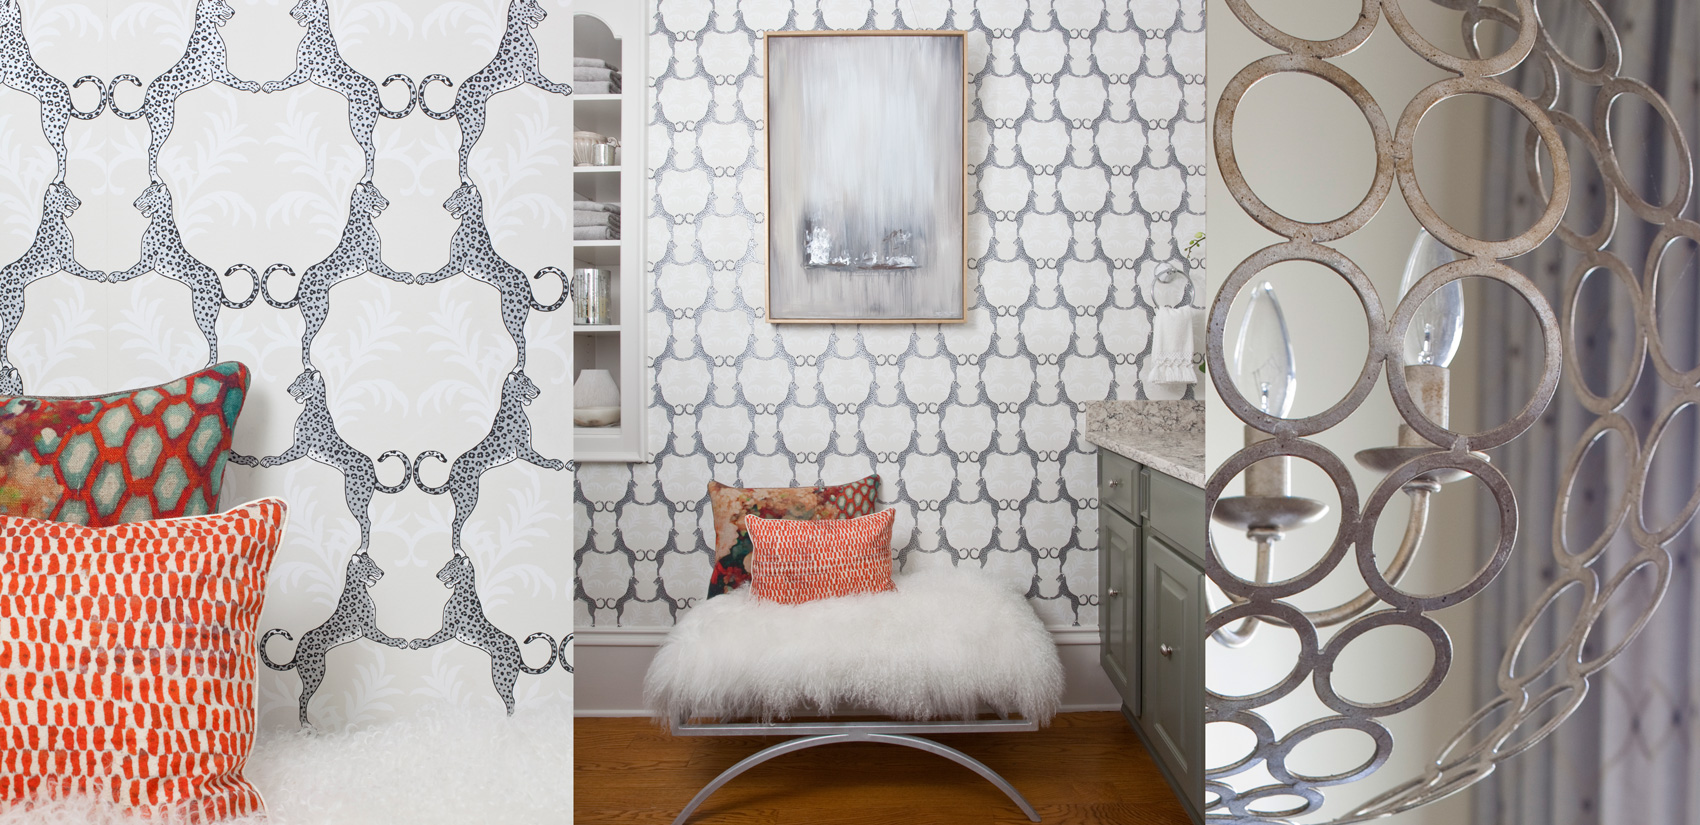 Wallpaper and Chandelier Photos. Bathroom & Dining Room Interiors